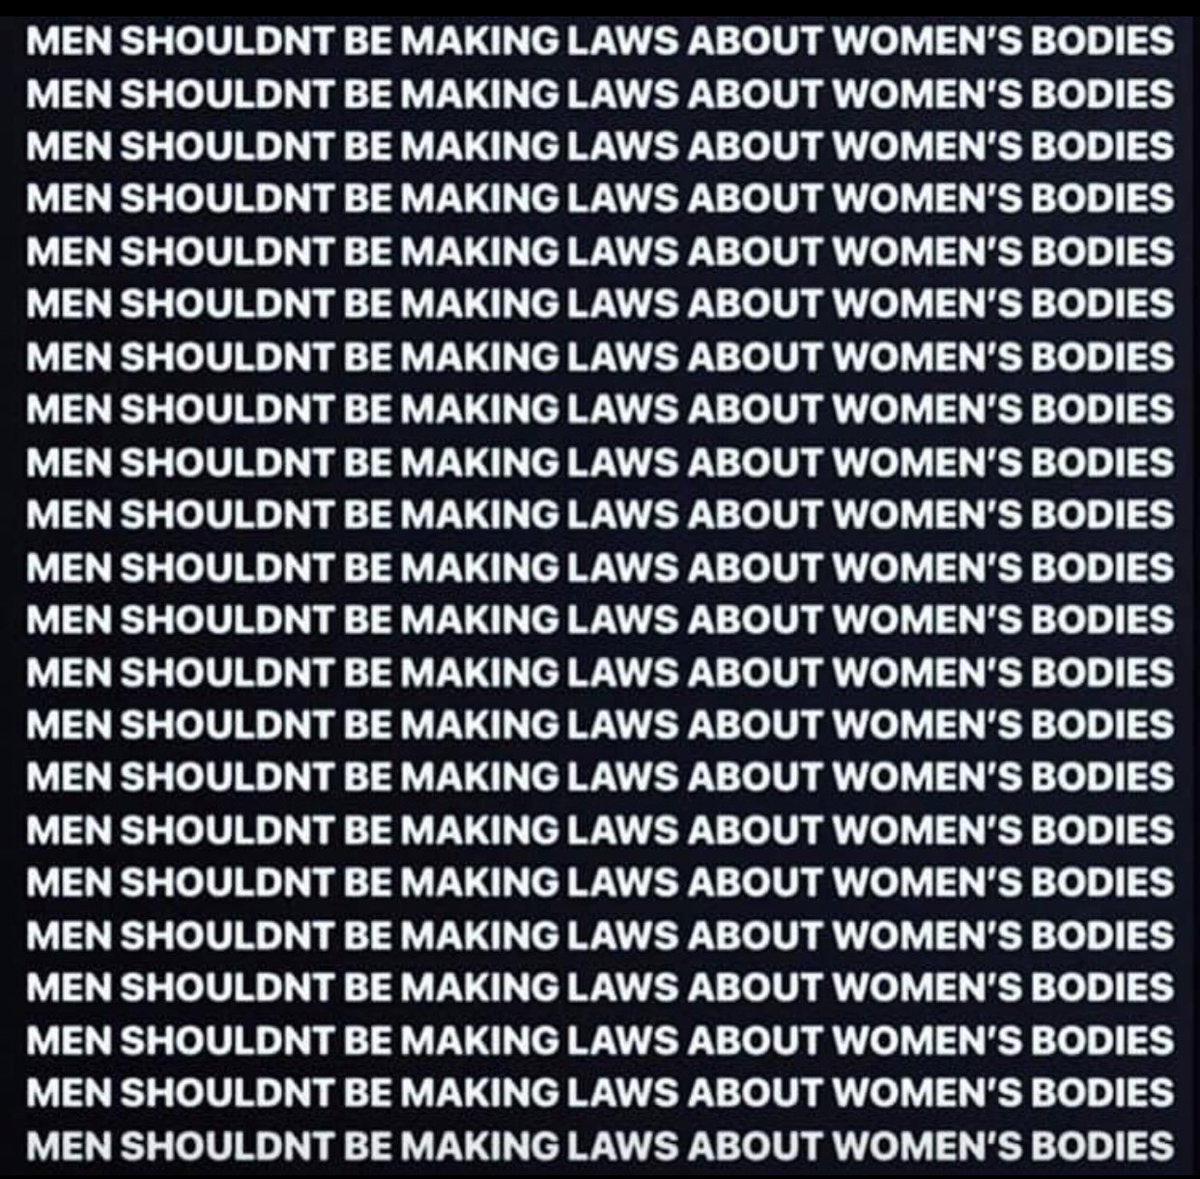 #YouKnowMe I'm a male, a father of two daughters, a brother to three sisters and my mother's son. My opinion doesn't matter, nor should it! But the #AlabamaAbortionBill is hideous and abhorrent!<br>http://pic.twitter.com/ySIpsTTqH4